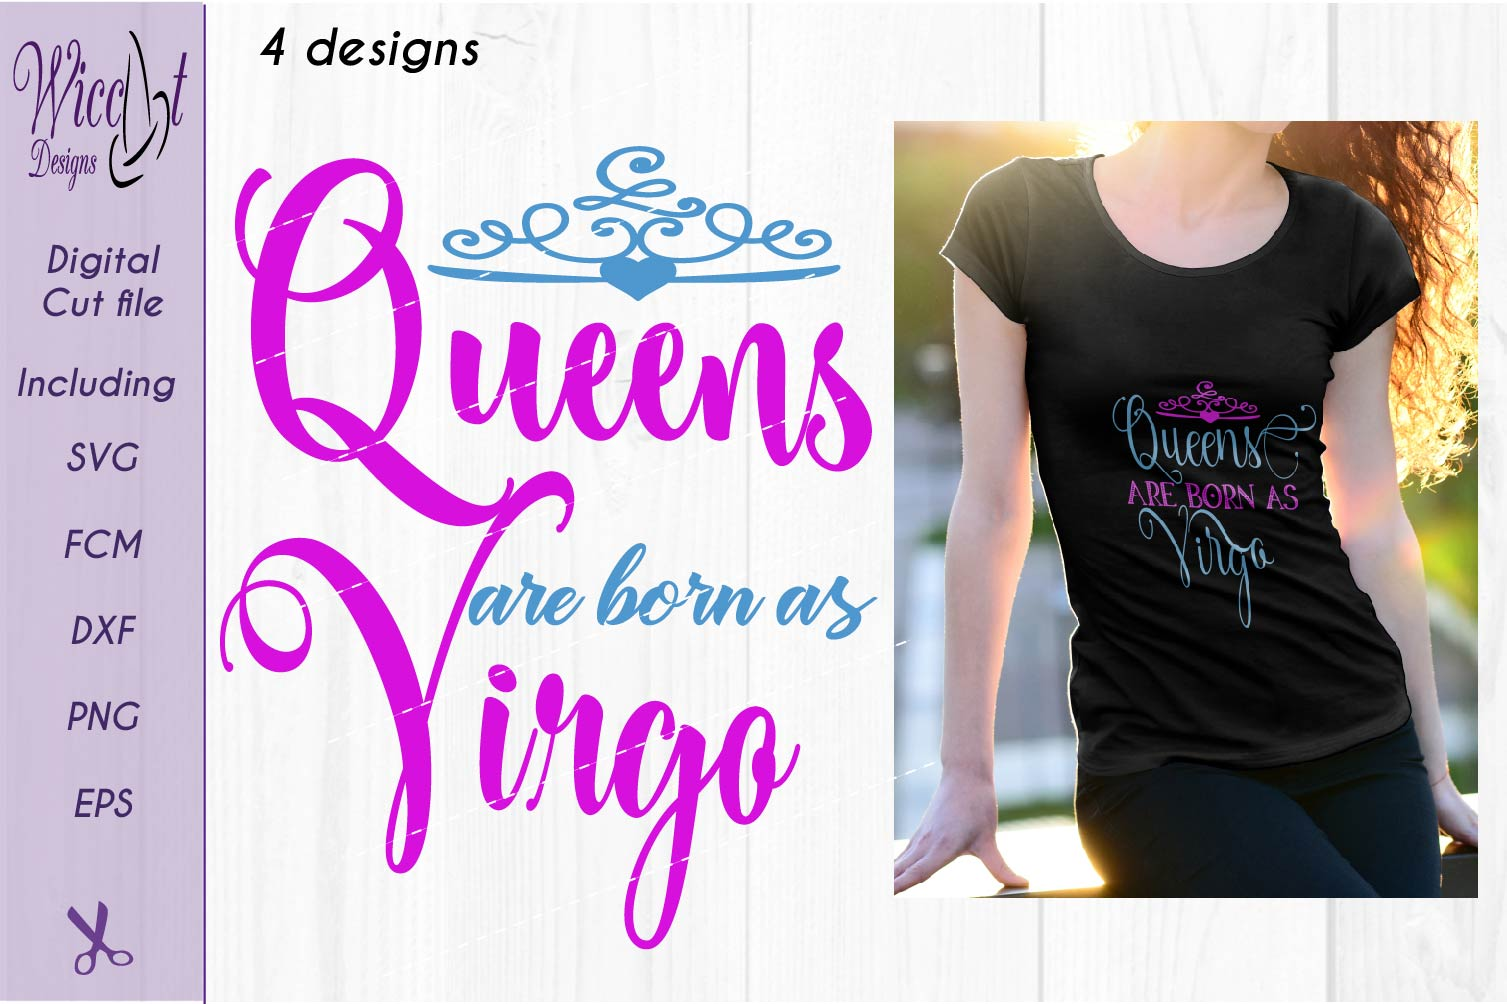 Zodiac quote svg, Queens quote svg, born as Virgo sign example image 1